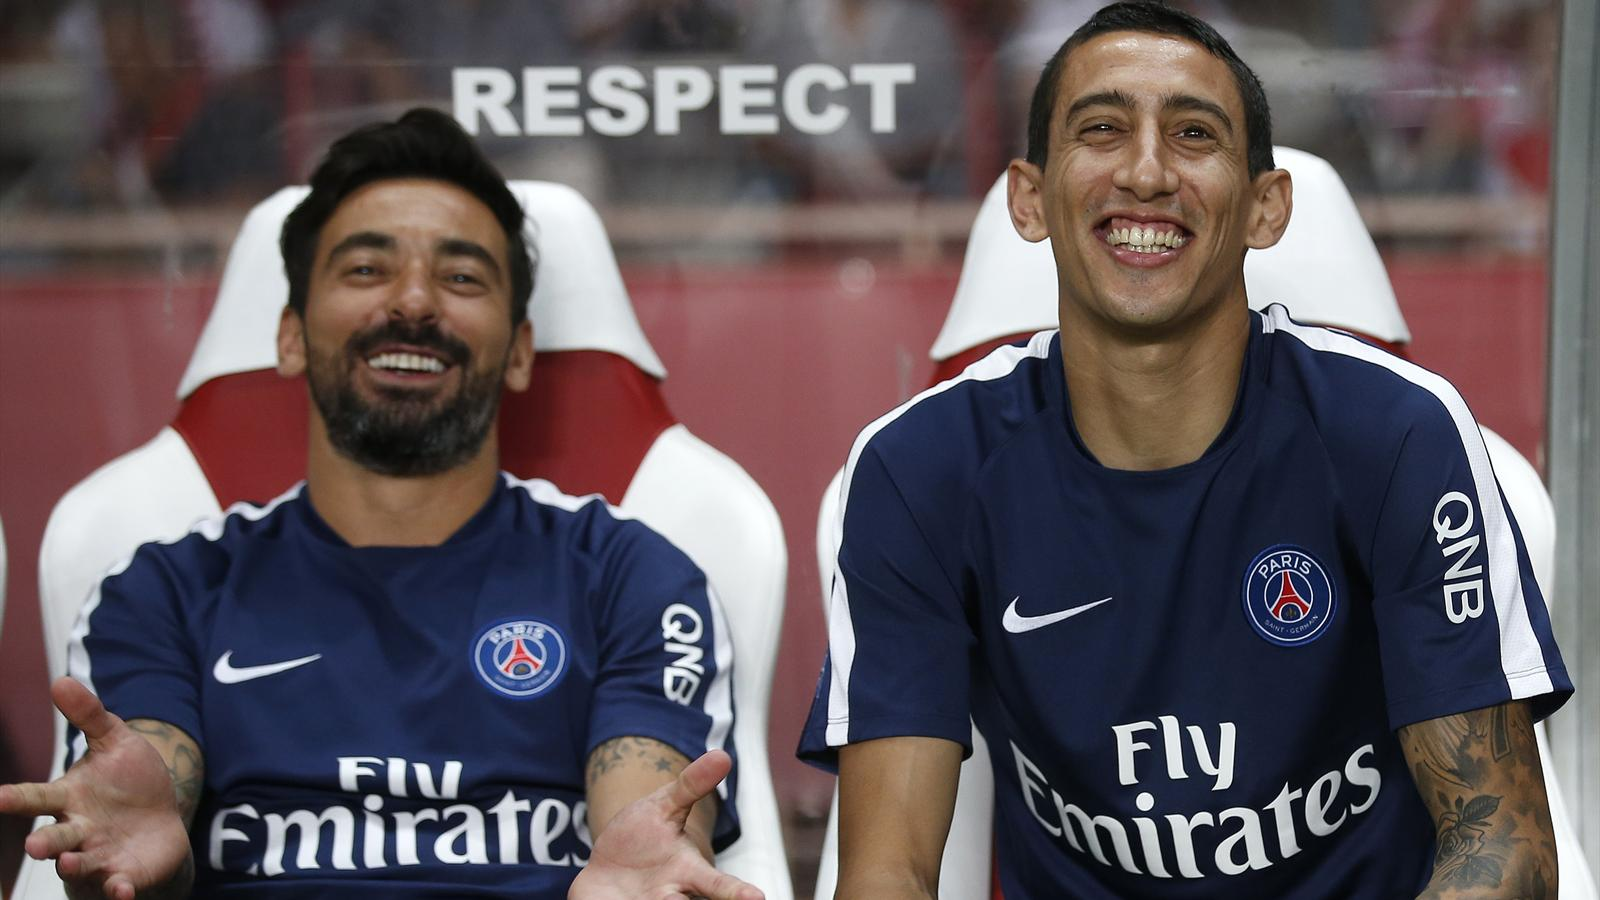 Paris St Germain's Angel Di Maria (R) and Ezequiel Lavezzi sit on the Paris Saint-Germain bench